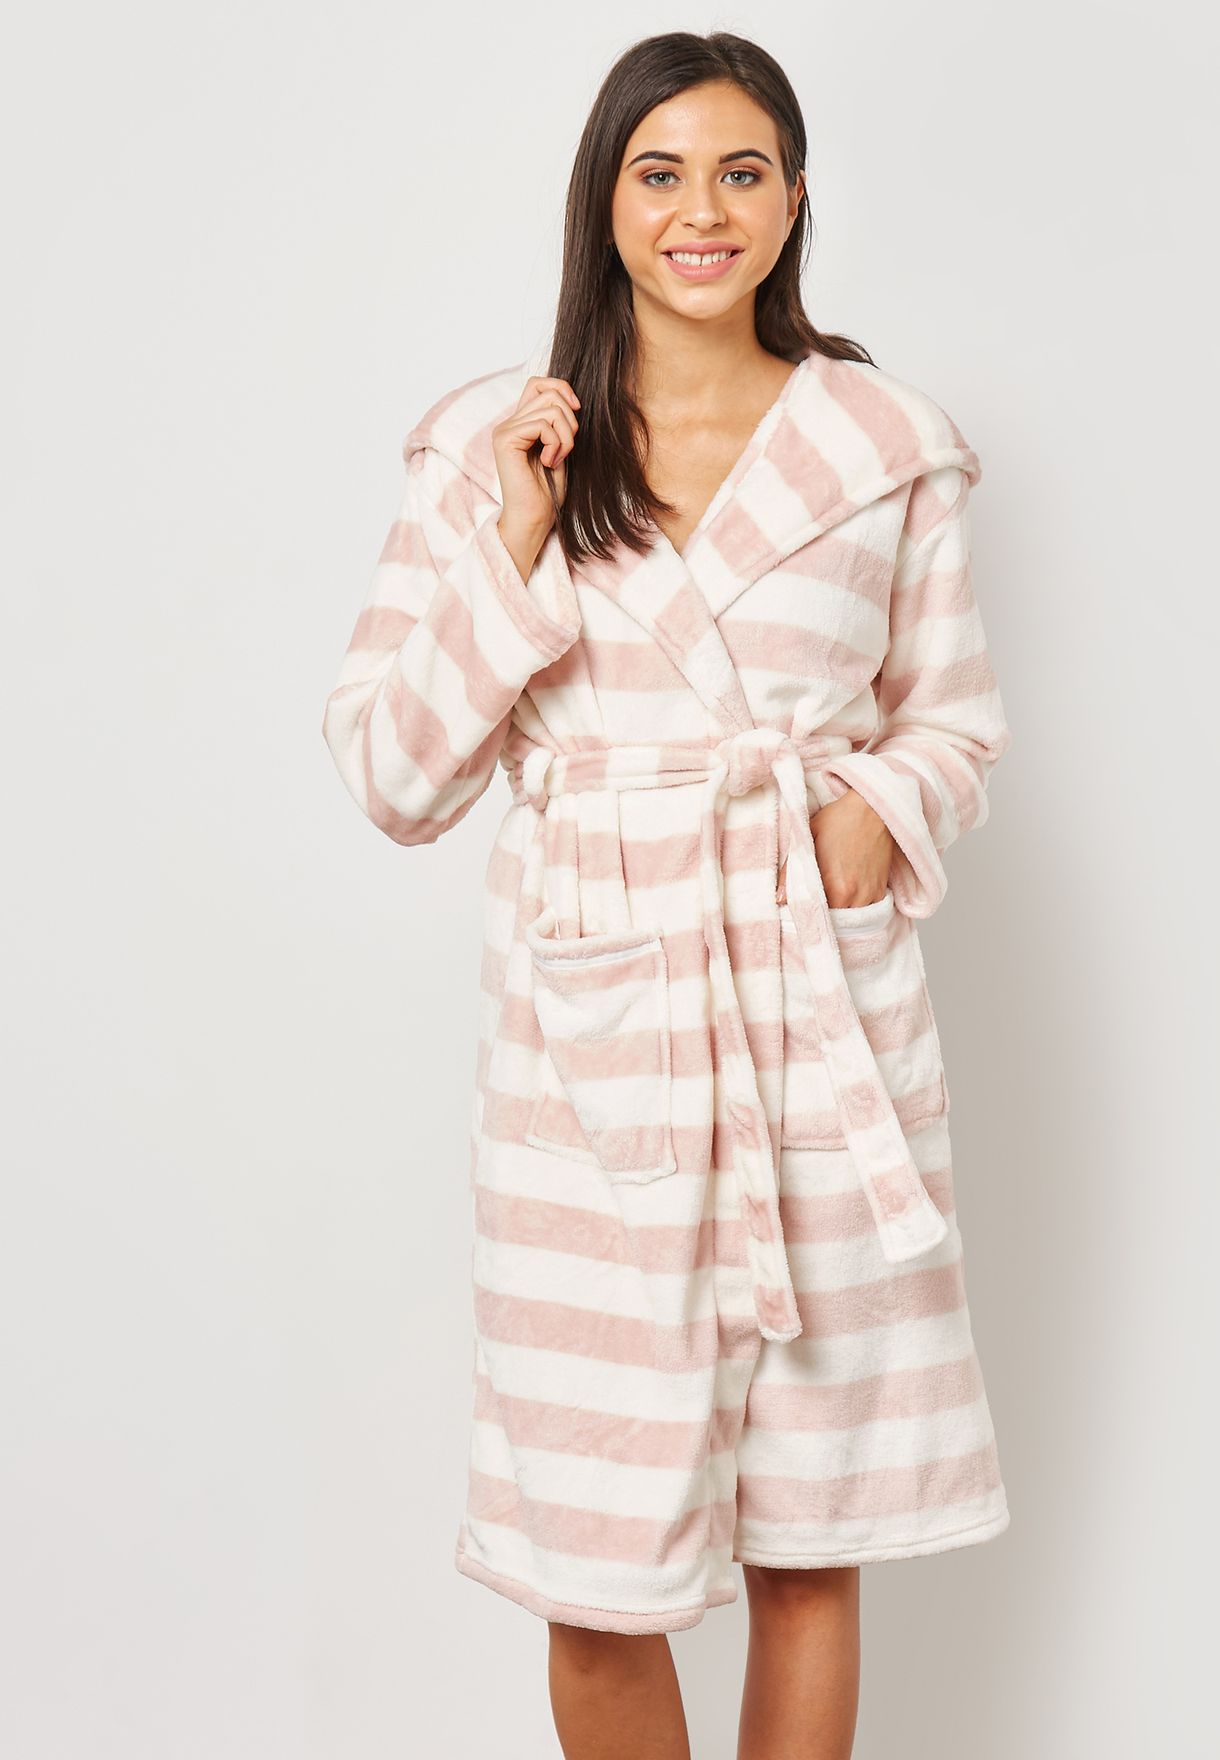 7f446efb6f Shop Dorothy Perkins stripes Printed Hooded Robe 33133381 for Women in  Kuwait - DO860AT75XNO